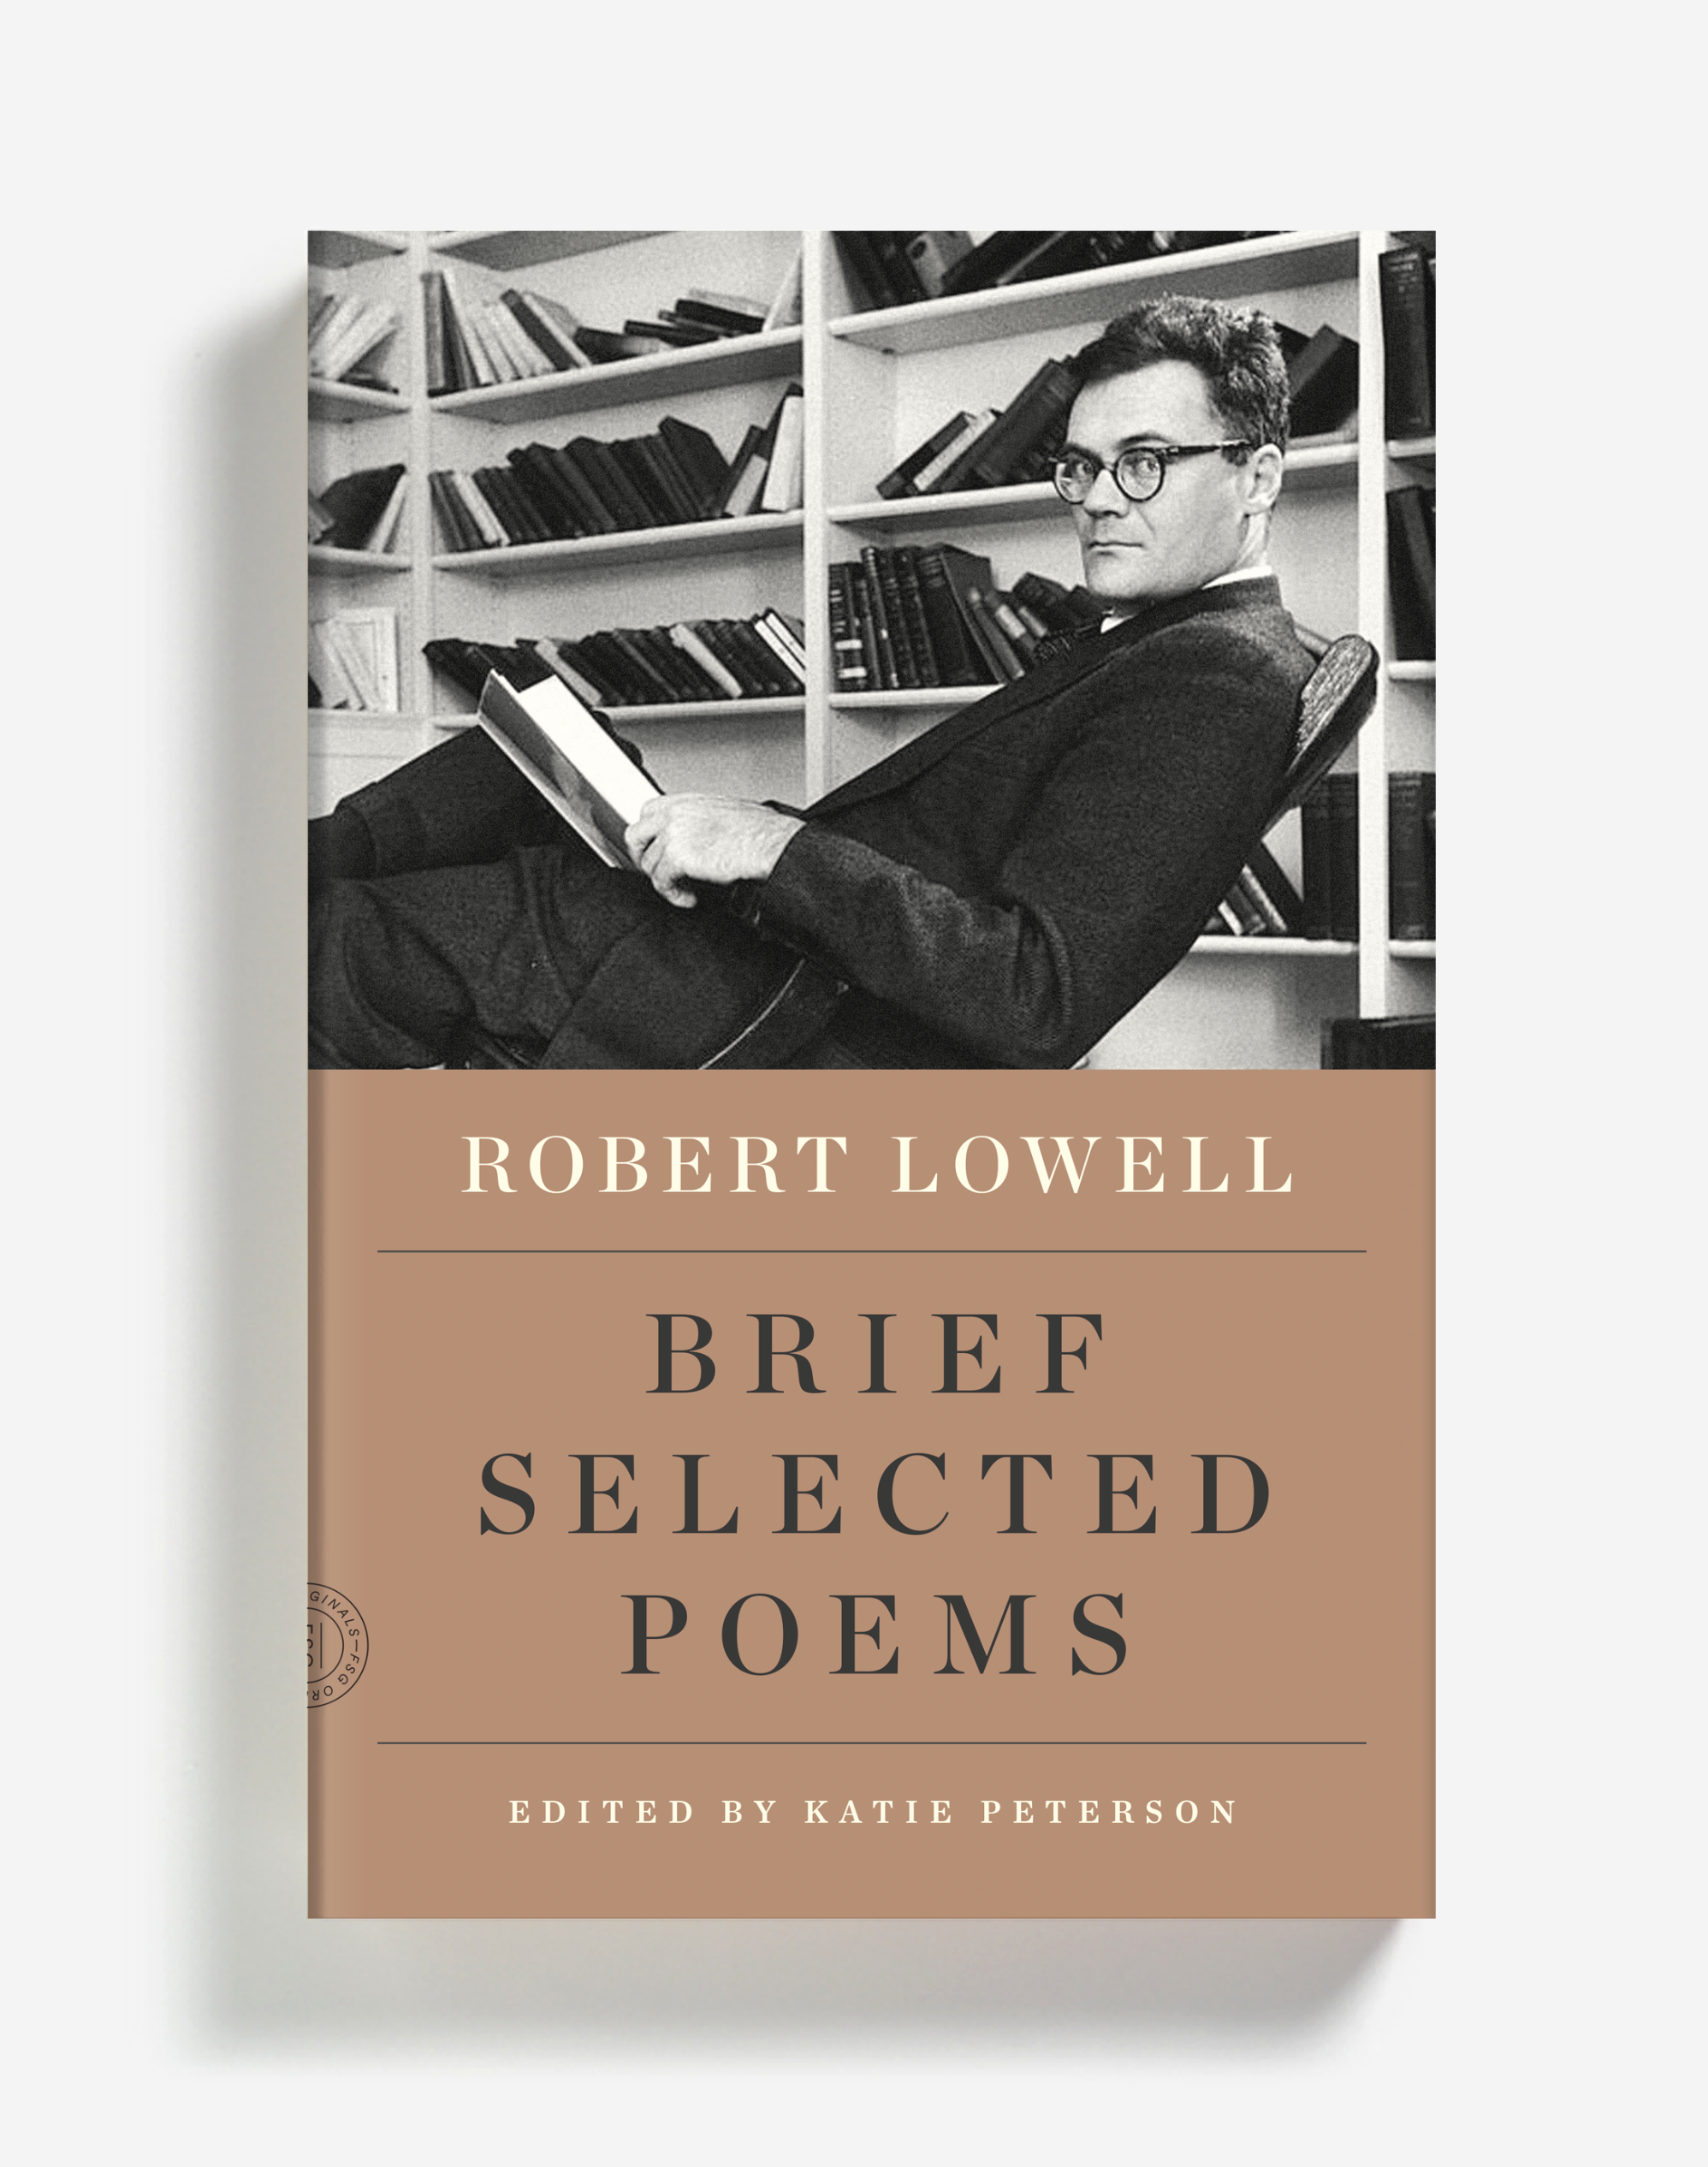 """New Selected Poems - """"Robert Lowell is a poet who reveals our own idiosyncrasies as readers whether we read him or not. With full sympathy for not having any dominant literary culture or personalities ever again, people are crazy if they go too sour on Lowell. As Katie Peterson makes clear in her New Selected Poems, which is a beautiful and idiosyncratic edition with a superb introduction, he is a poet of immense range and subtlety, a poet whose poems are 'memorable for their language, not simply the vanishing facts of story' and who 'remained constitutionally immune to any stultifying permanence either of form or of spirit.'""""- David Blair, StorySouth"""